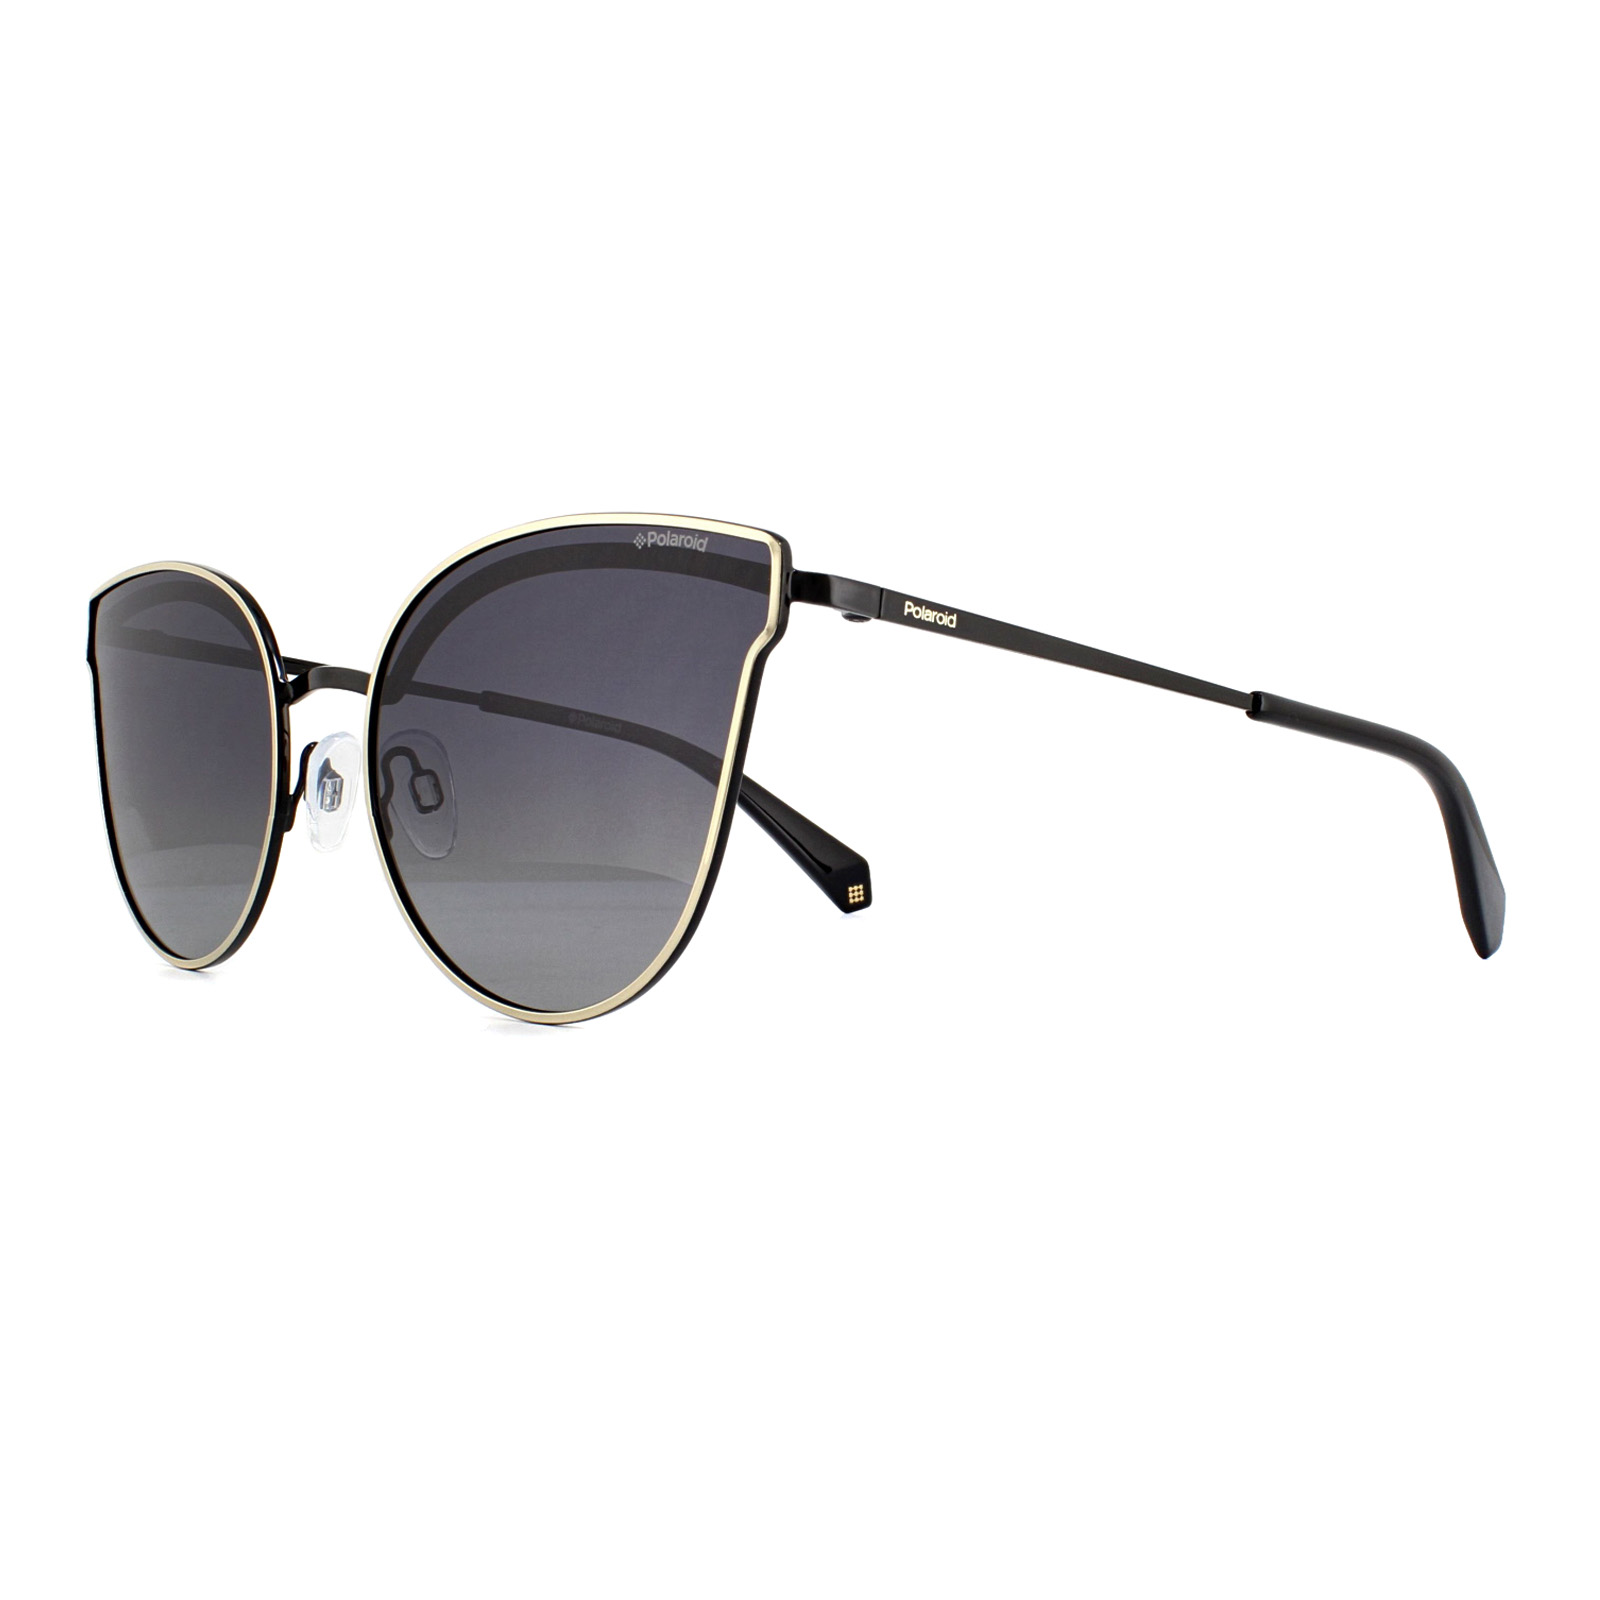 f69038508e Sentinel Polaroid Sunglasses PLD 4056 S J5G WJ Gold Grey Polarized